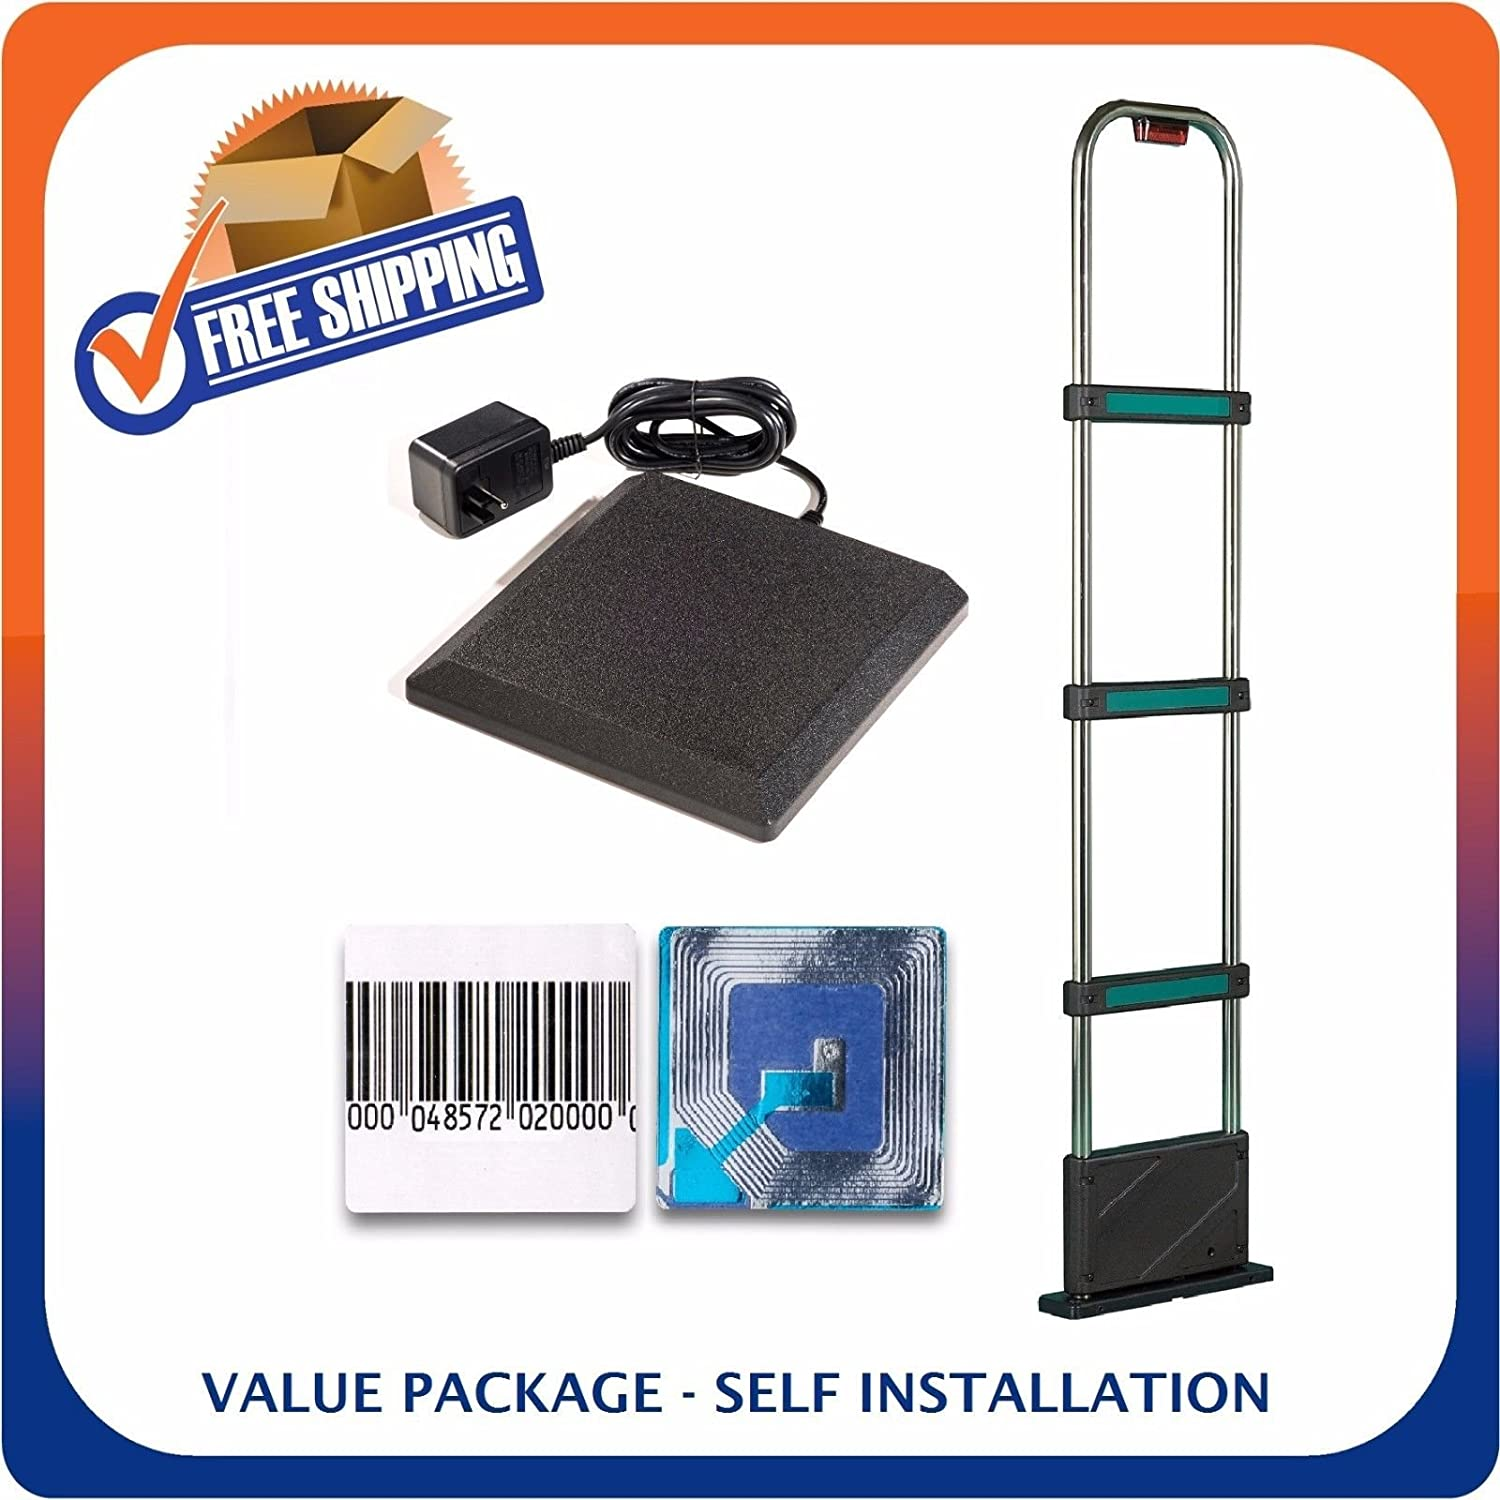 Retail Security Value Pack Including Tower + Deactivator + Soft Labels - EAS Loss Prevention - MADE IN USA Sensornation